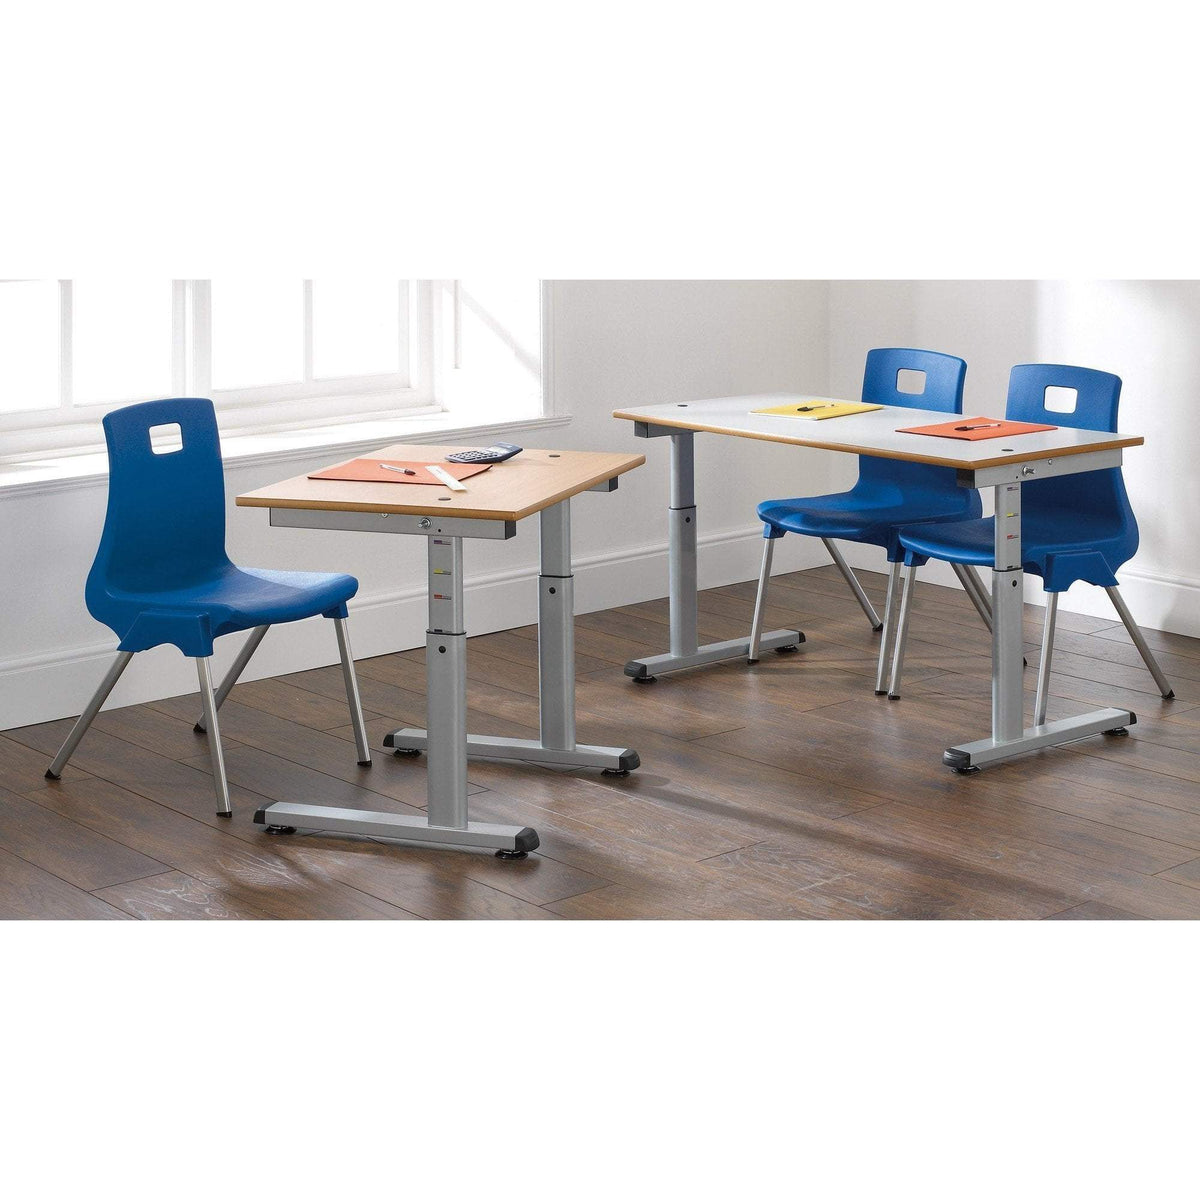 height adjustable table 700 x 600mm Single Desk / MDF Access Height Adjustable Table 700 x 600mm Single Desk / MDF